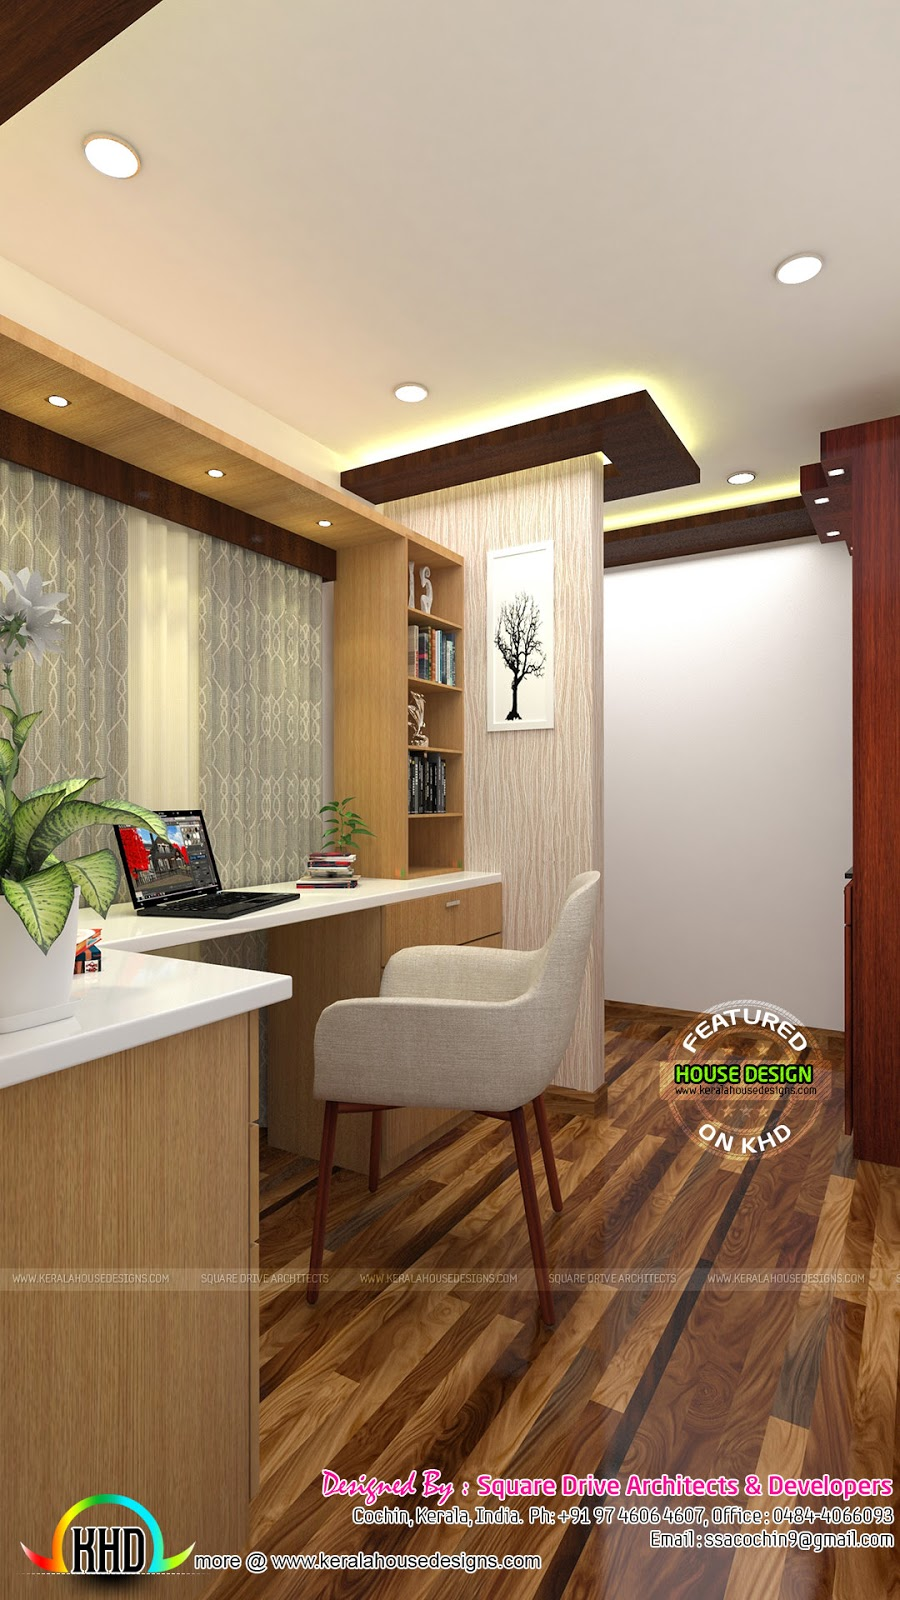 House Study Room: Bedroom, Living, Prayer Room And Study Room